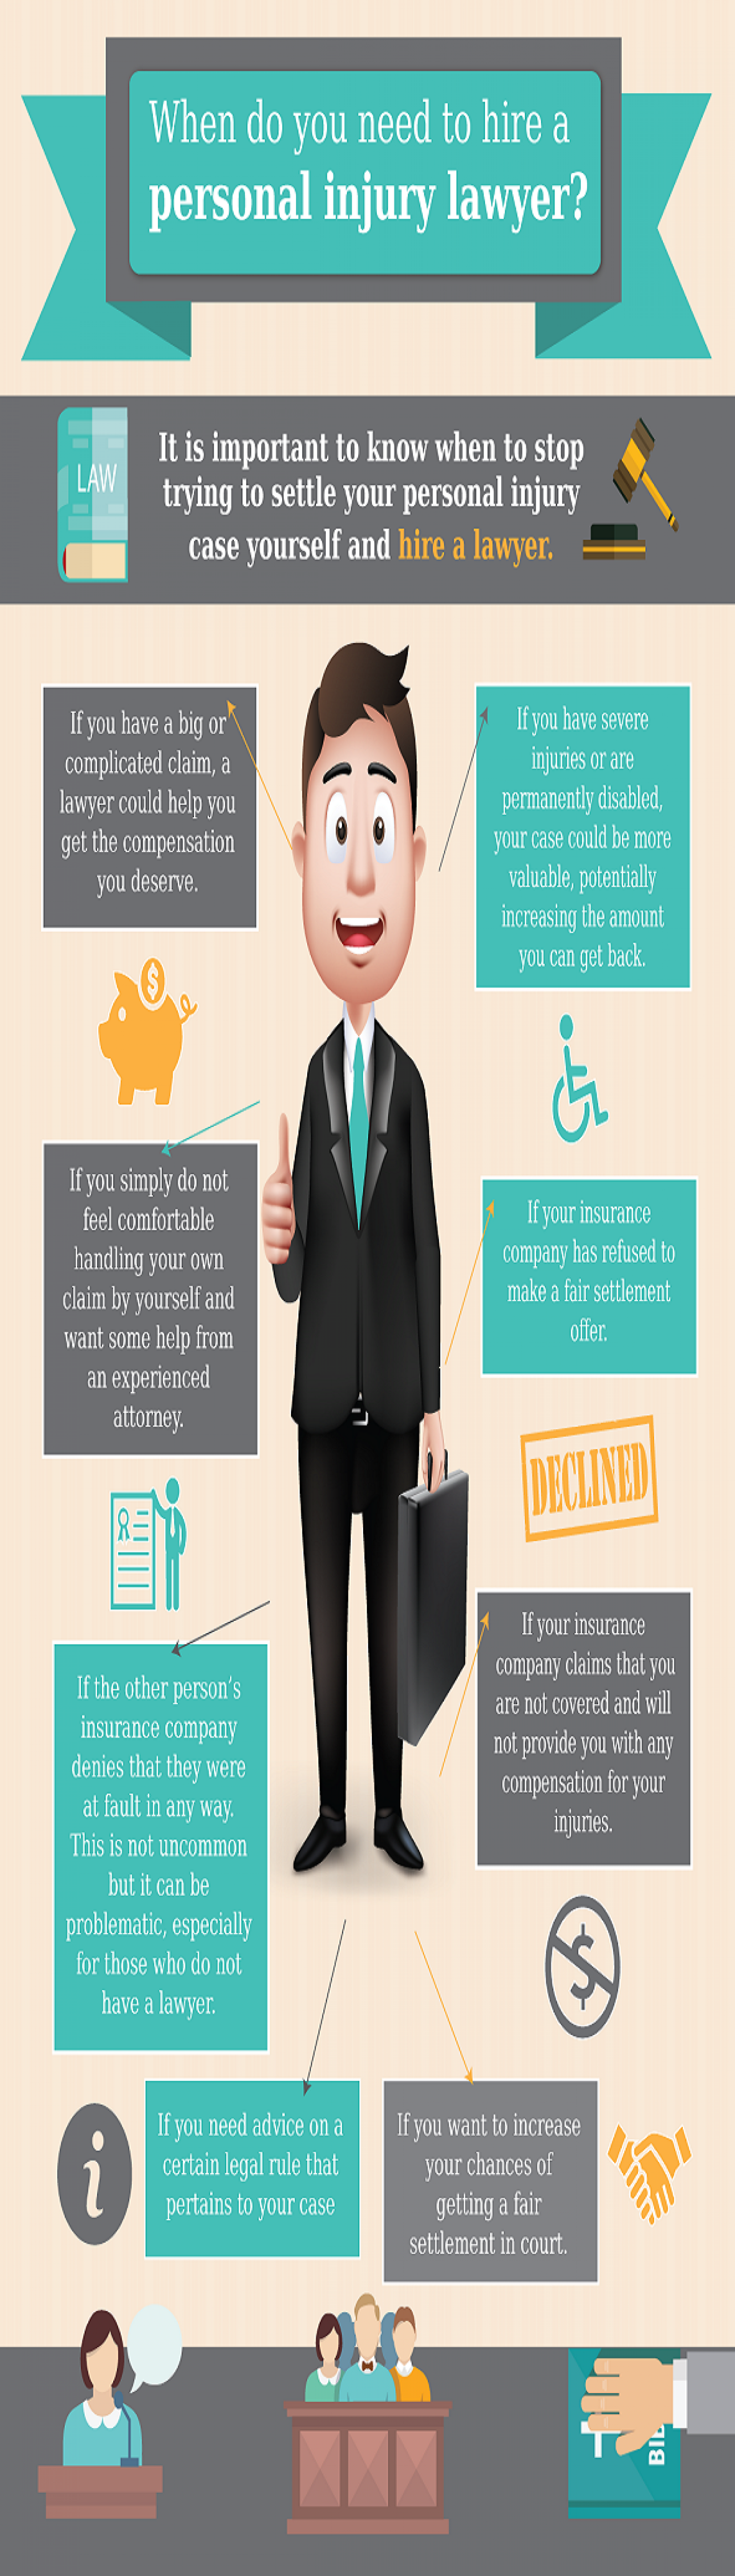 How to Hire a Communications Lawyer